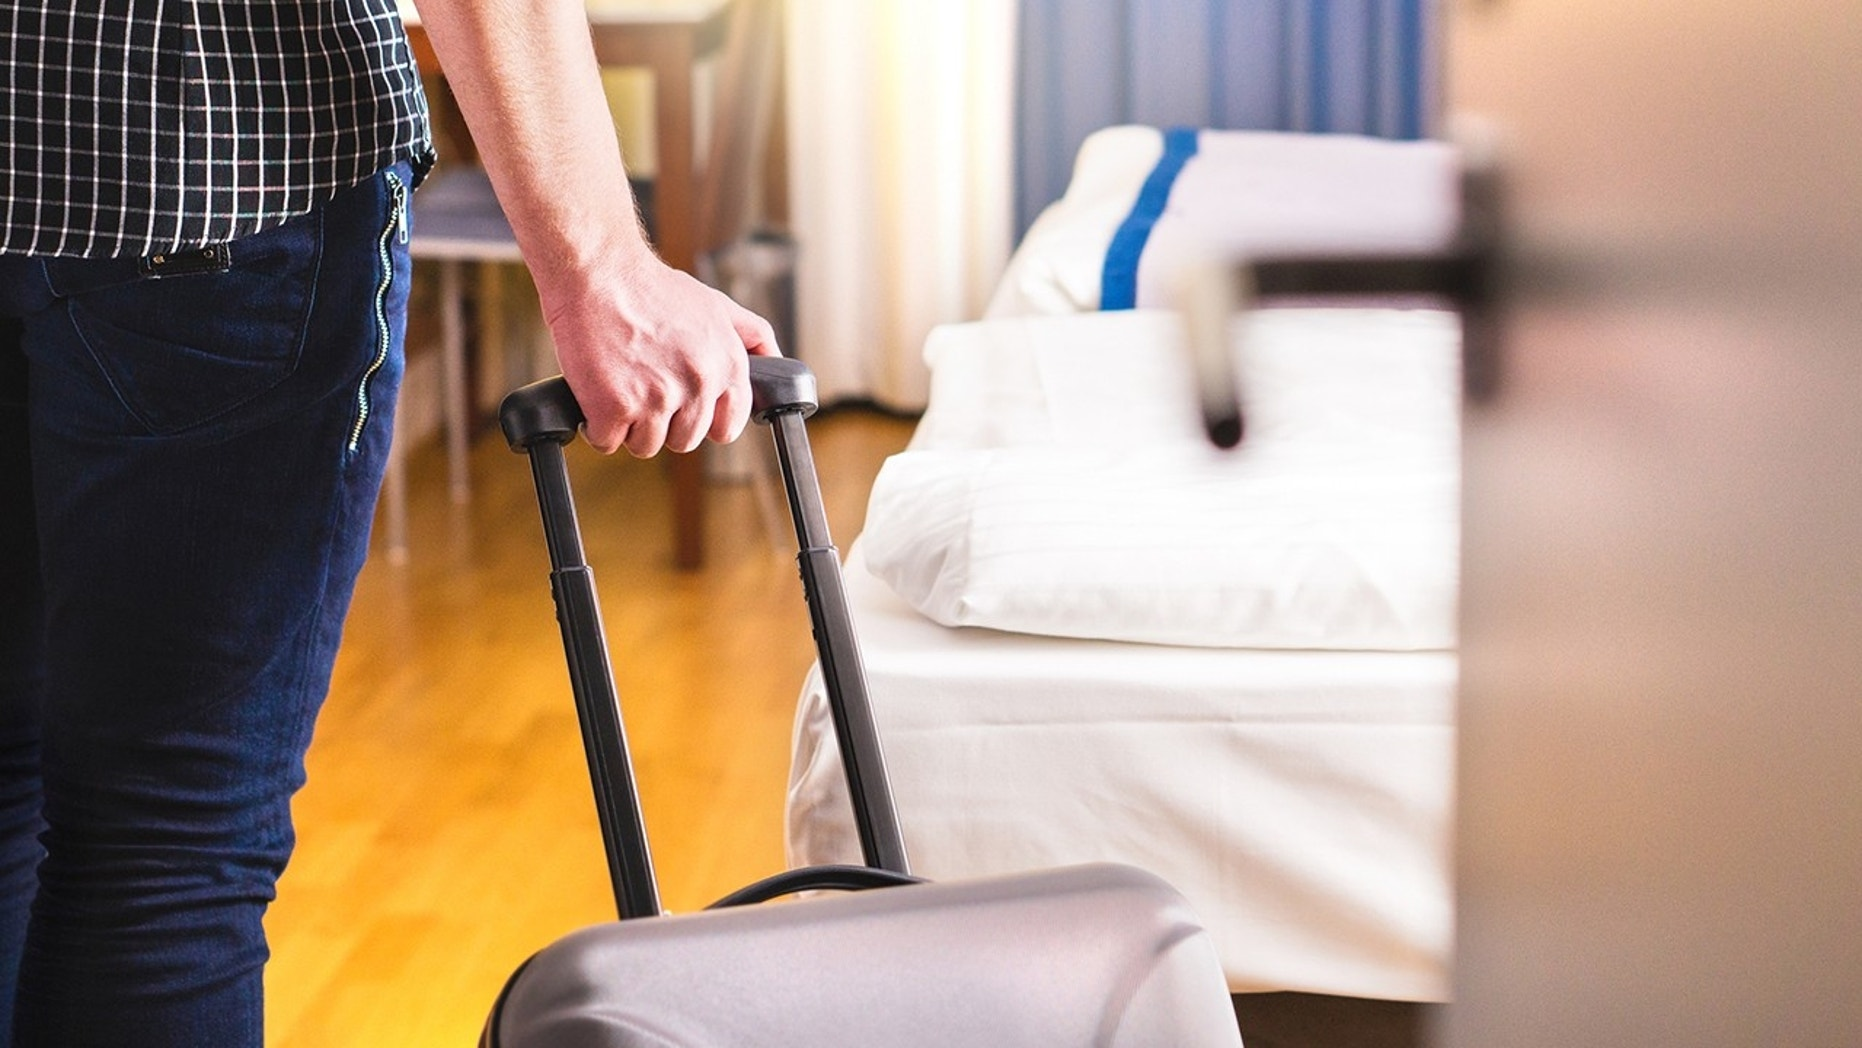 Hotels Spending Big Bucks in Fight Against Bed Bugs